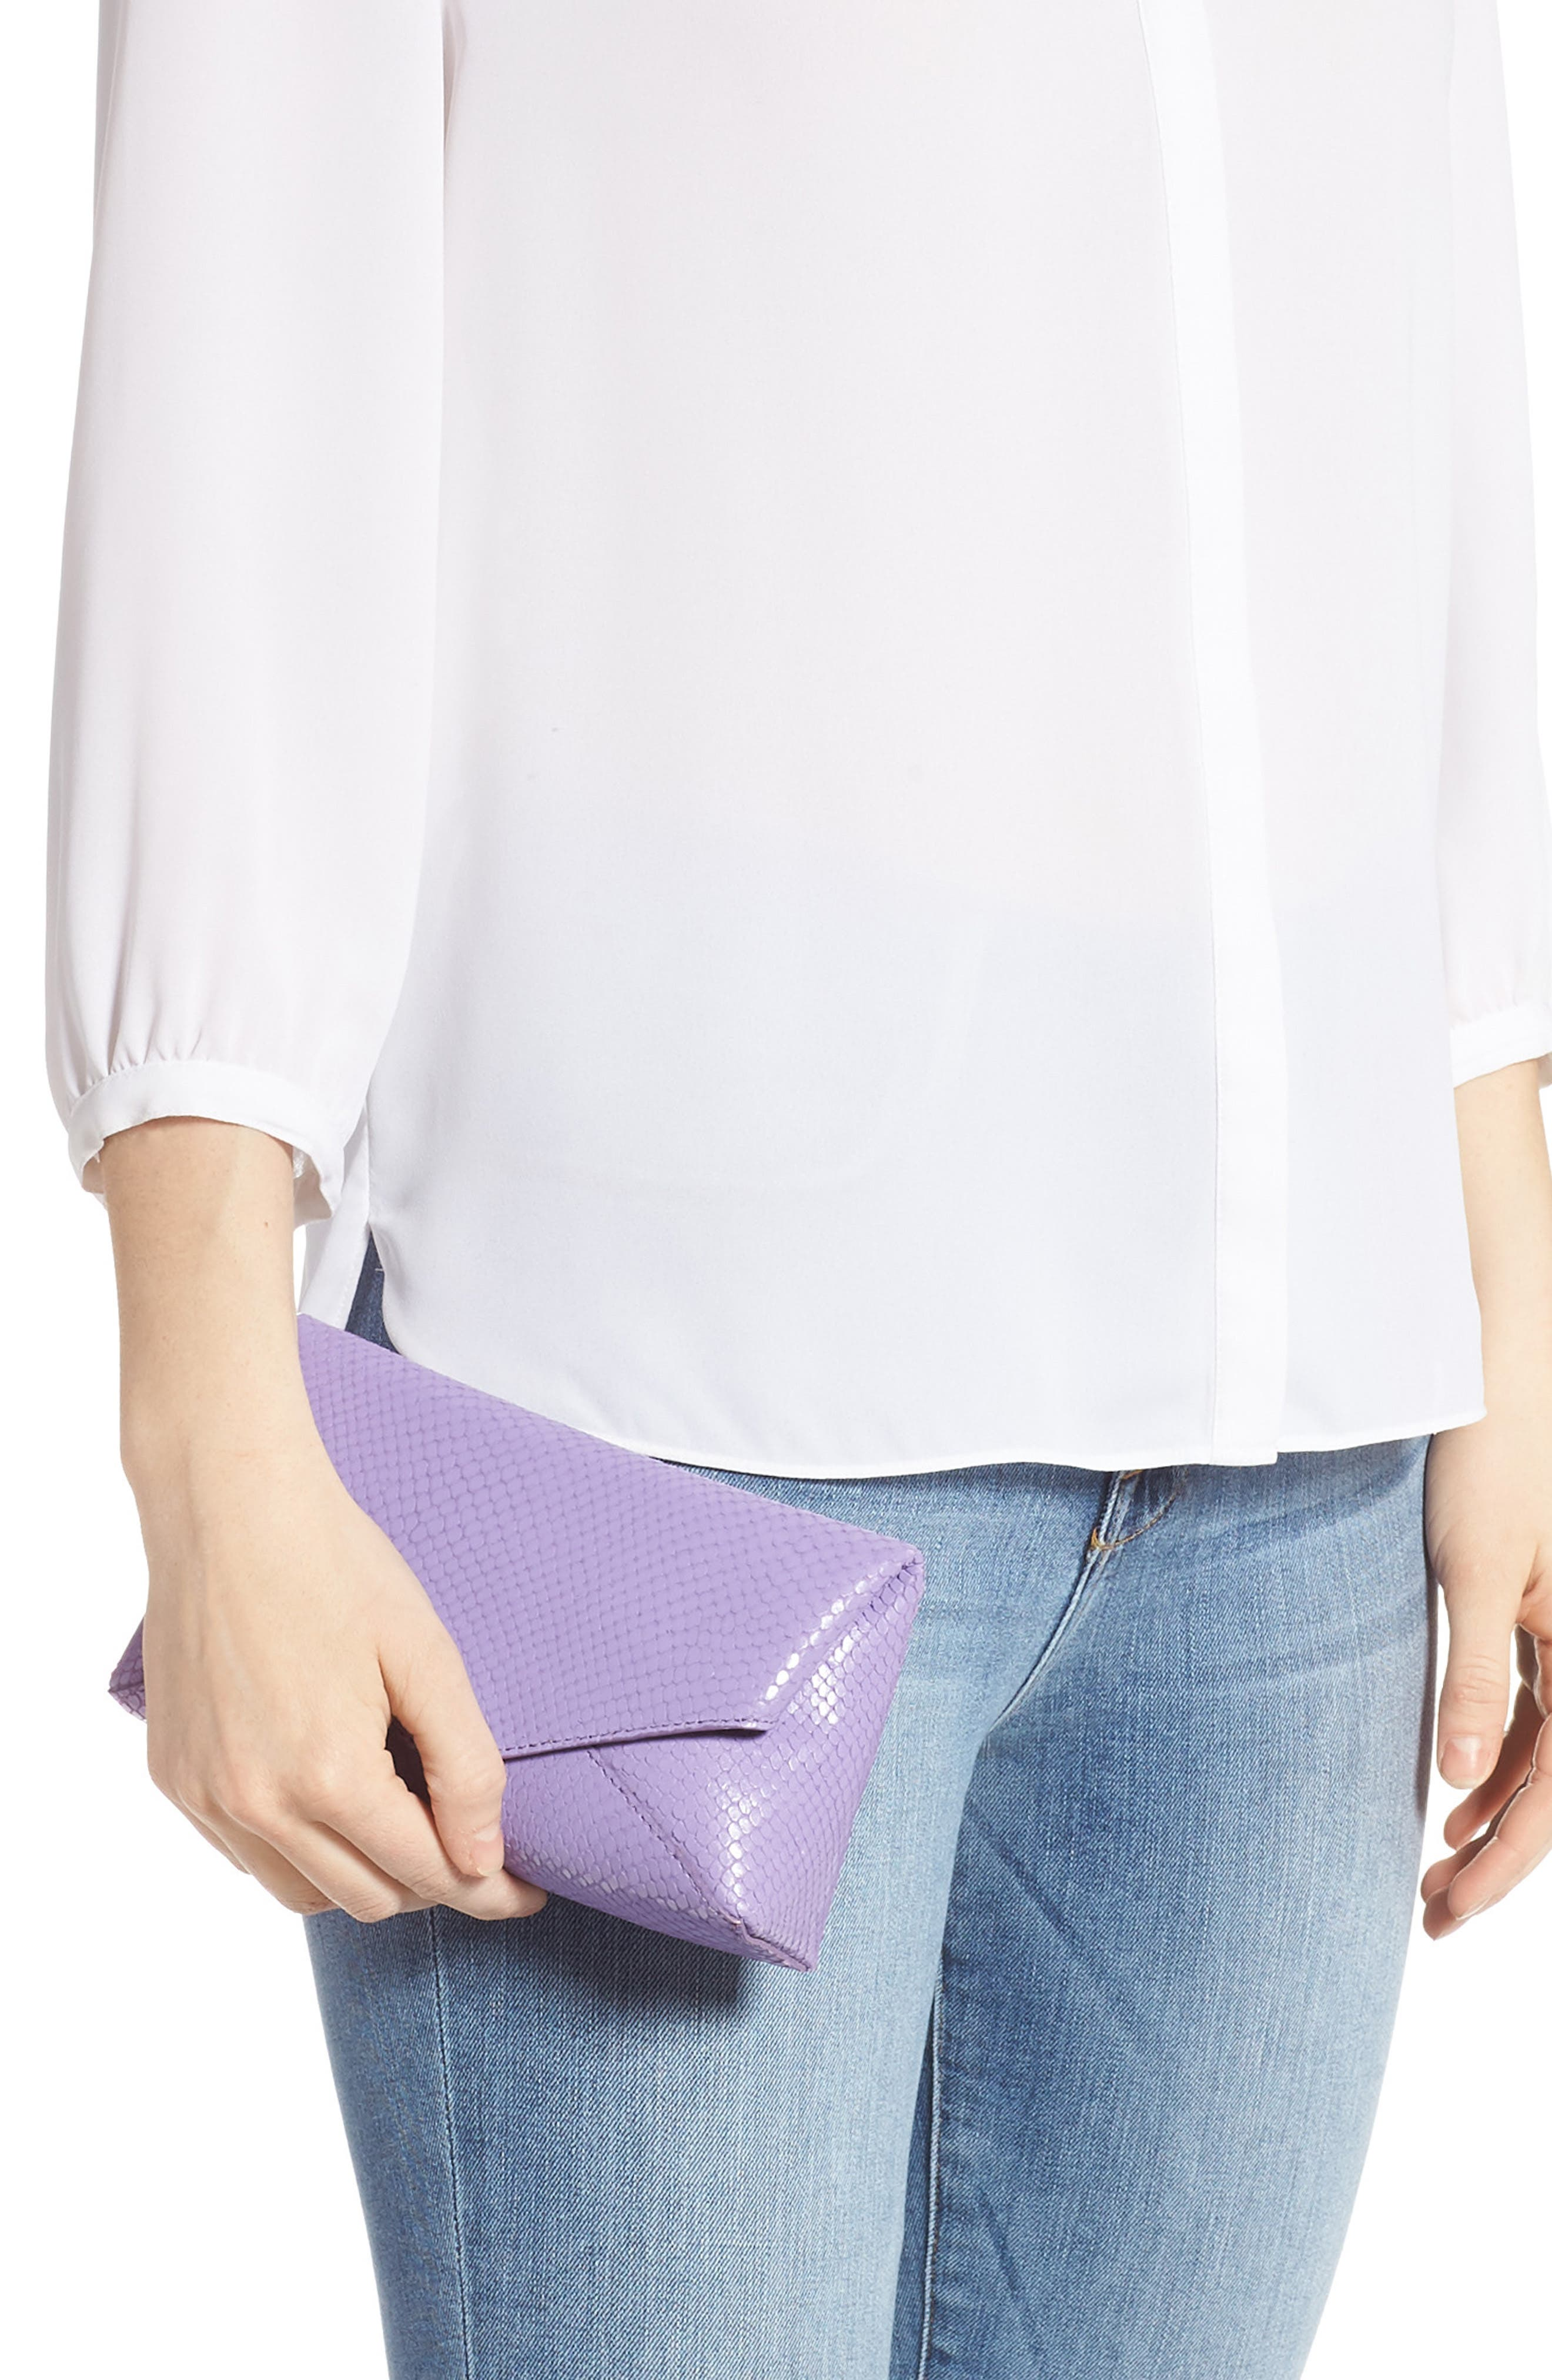 DRIES VAN NOTEN, Small Python Embossed Leather Envelope Clutch, Alternate thumbnail 2, color, LILAC